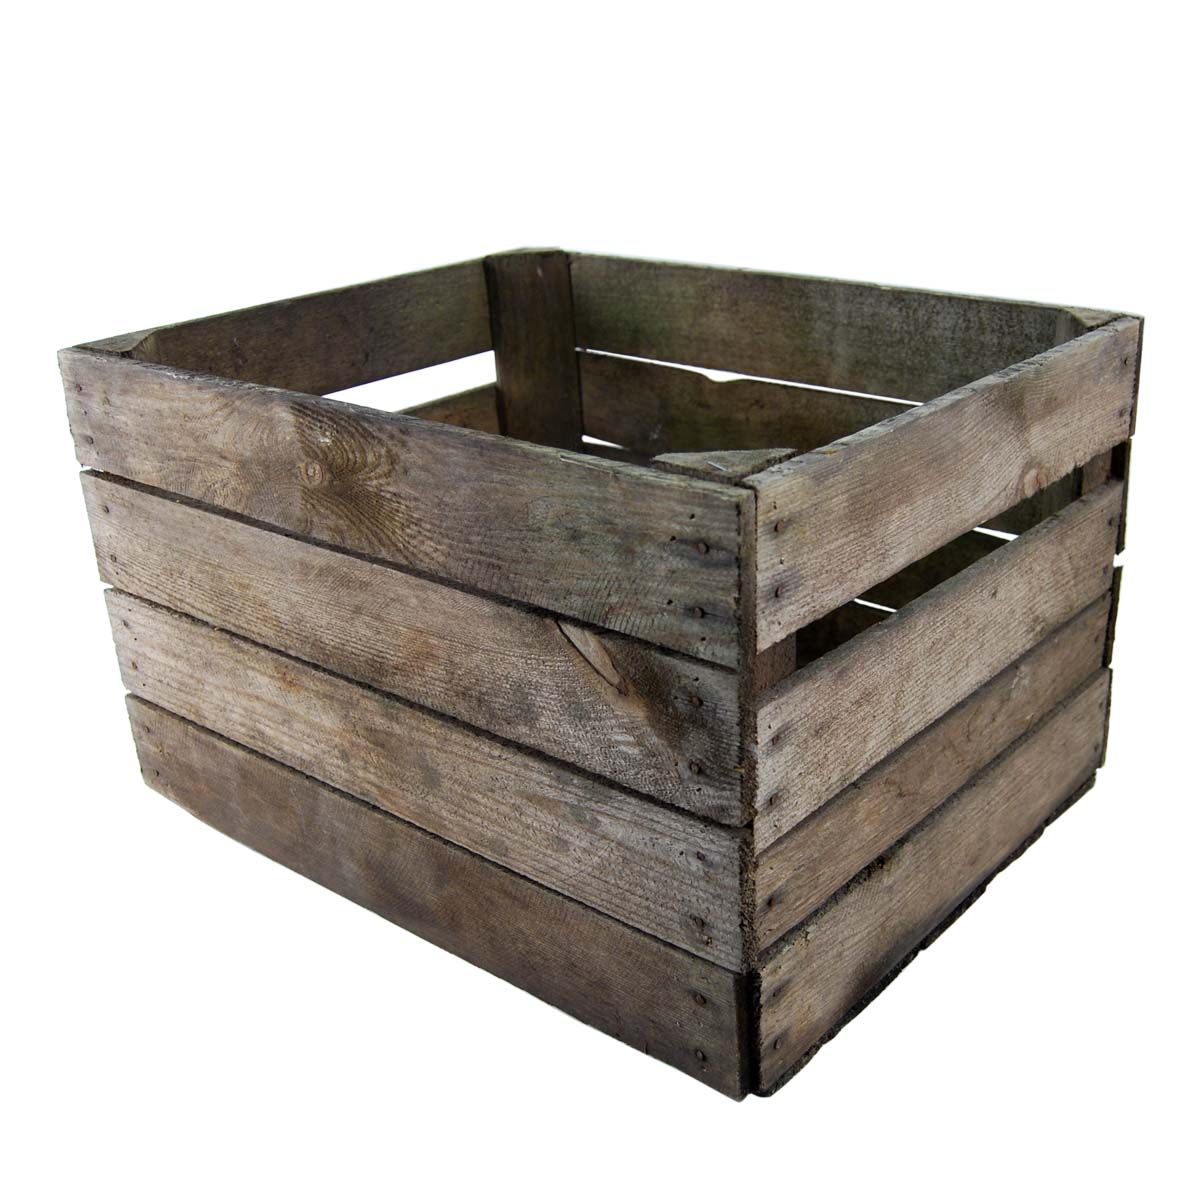 wooden apple crates ideal storage boxes display ebay